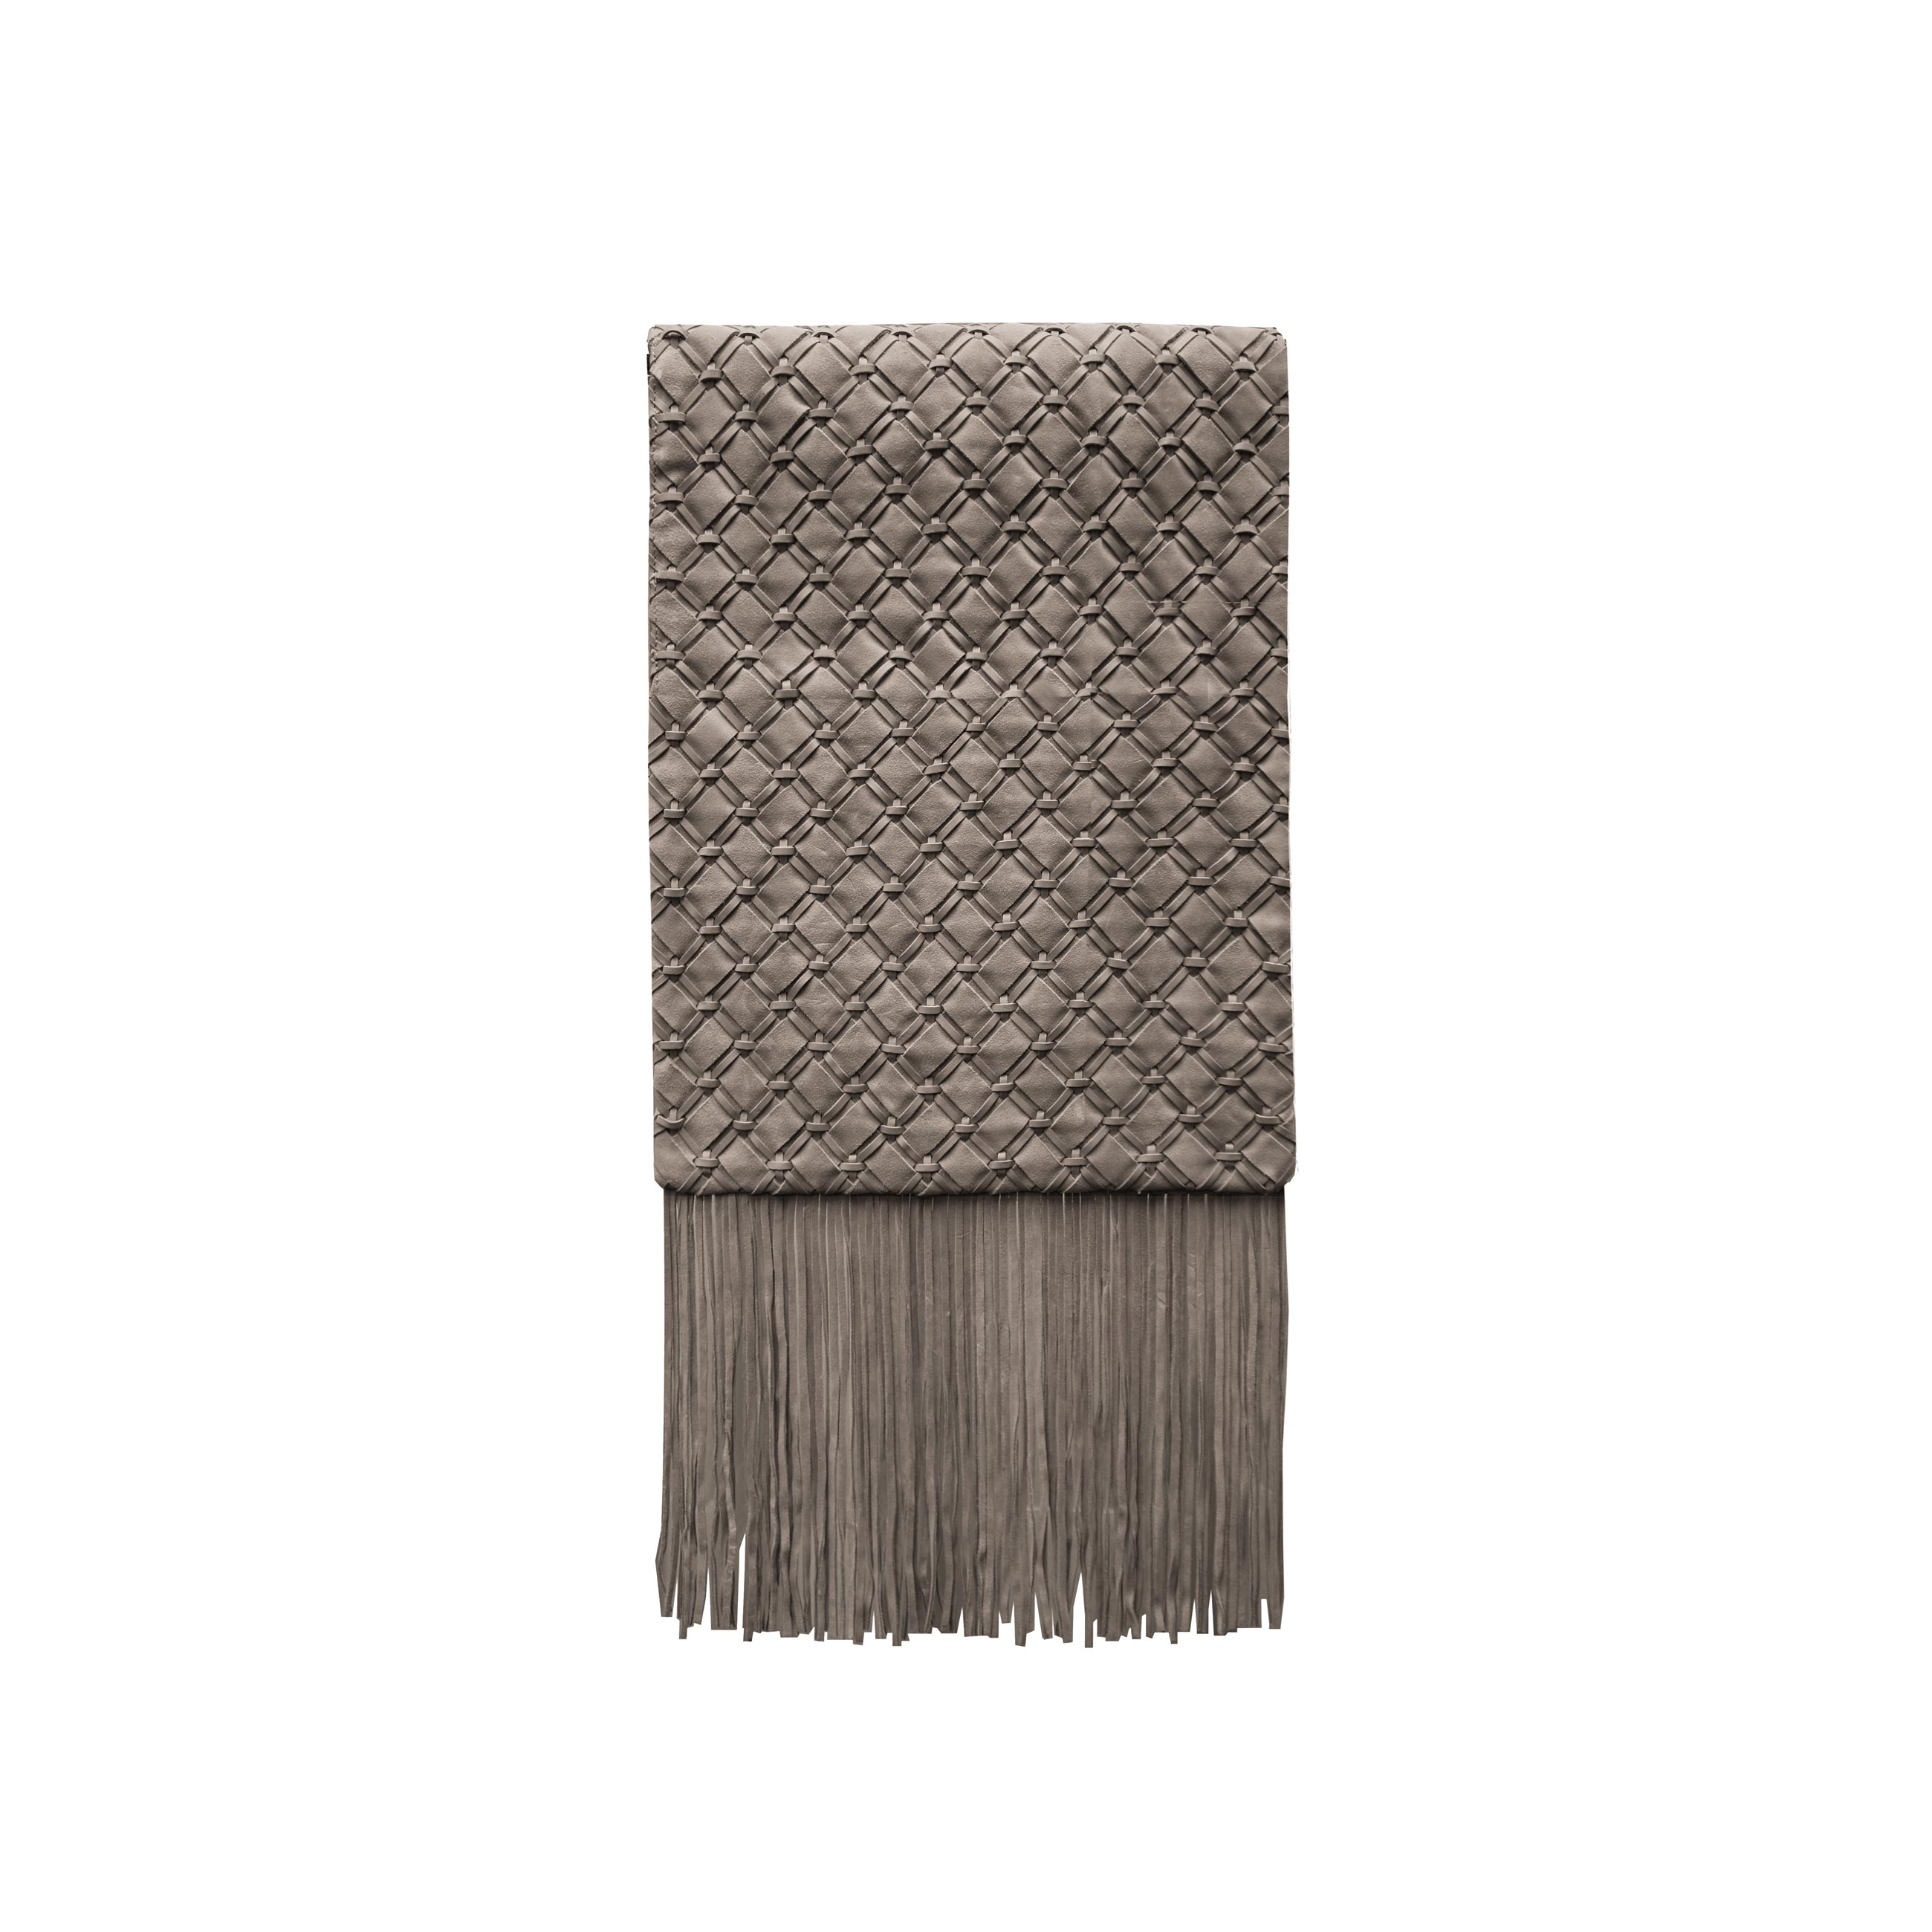 Geometrico Woven Leather Throw - The Geometrico Woven Leather Throw is designed to complement an ambient setting with natural and sophisticated feeling. Our woven leather pieces, are handmade and manufactured in Brazil using an exclusive treated leather that brings the soft feel touch to every single piece. 